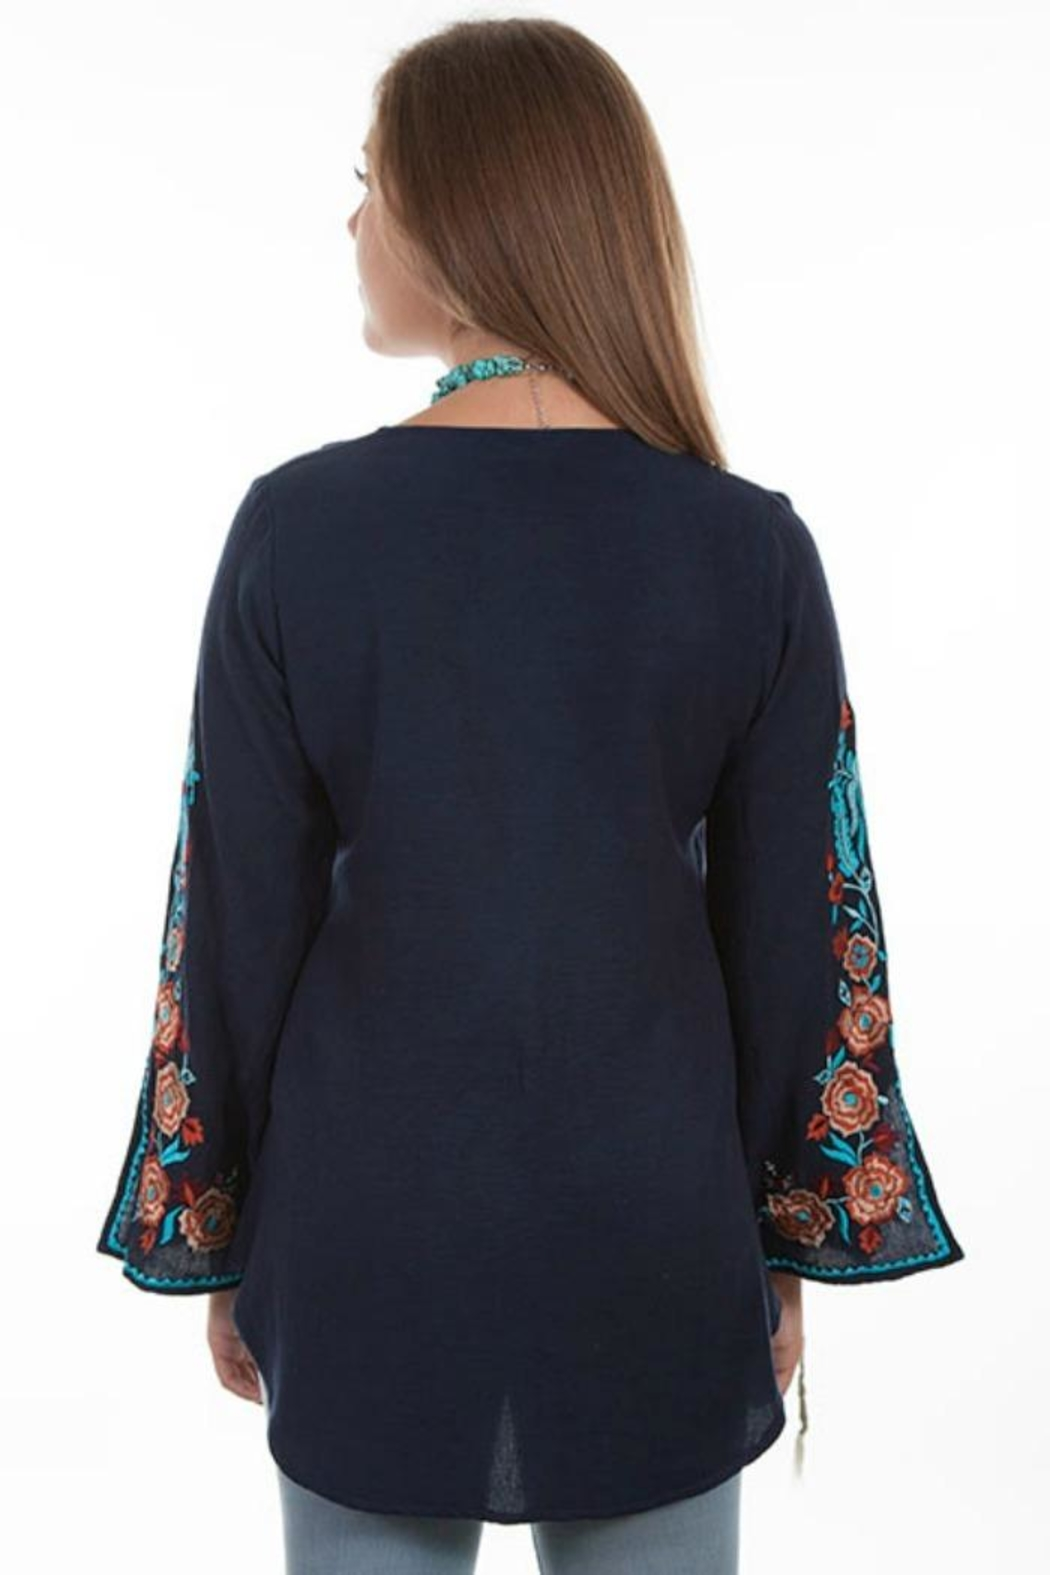 Scully Peacock Embroidered Blouse - Front Full Image